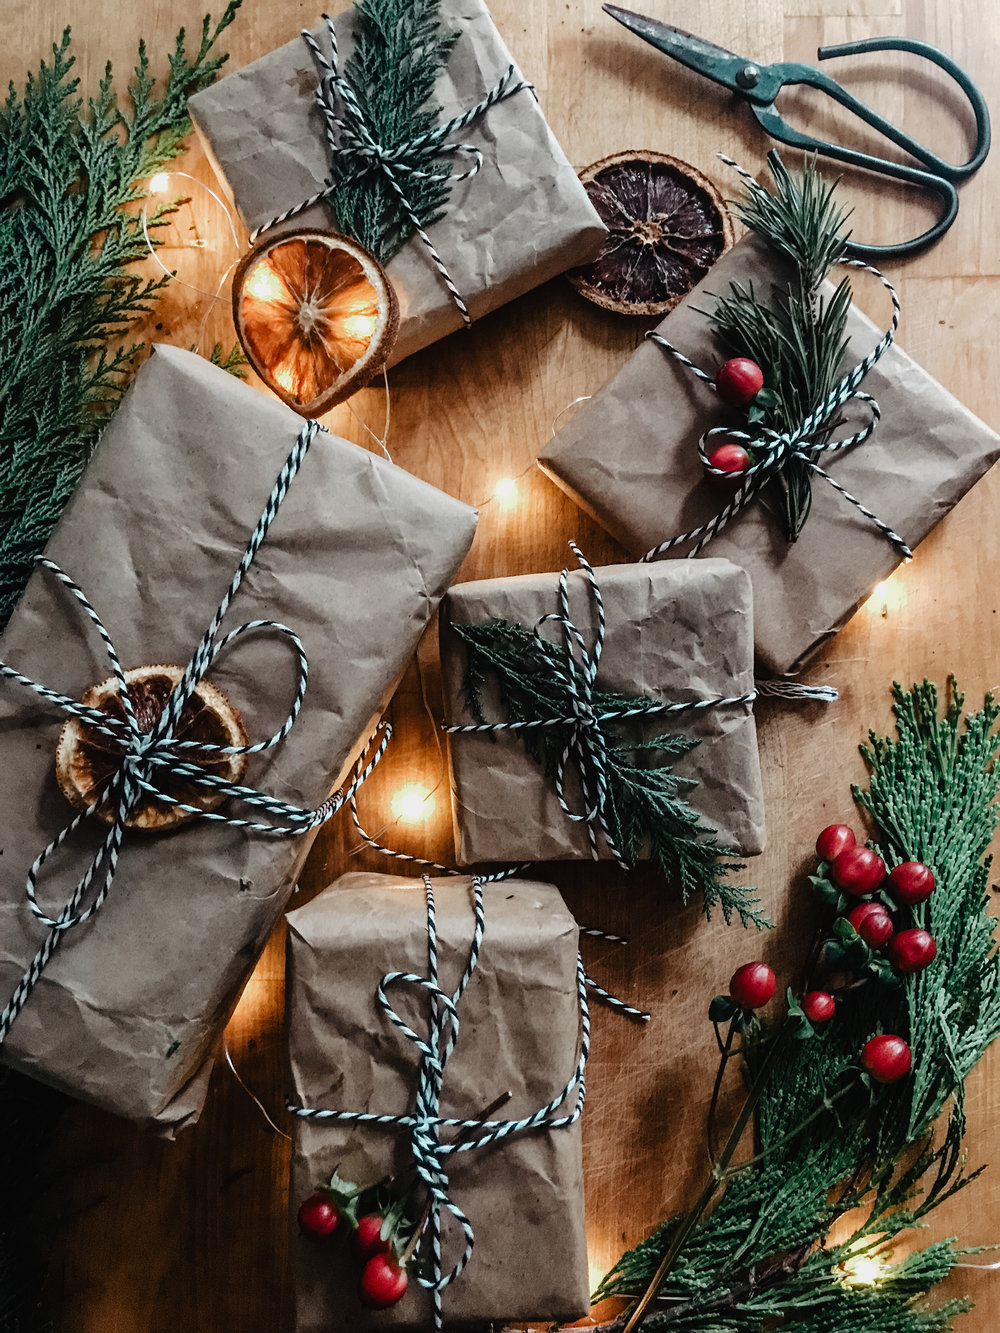 Instead of buying wrapping paper, I've been collecting any paper bags that I get. I love it because it is versatile, minimalist, and best of all, more sustainably conscious!